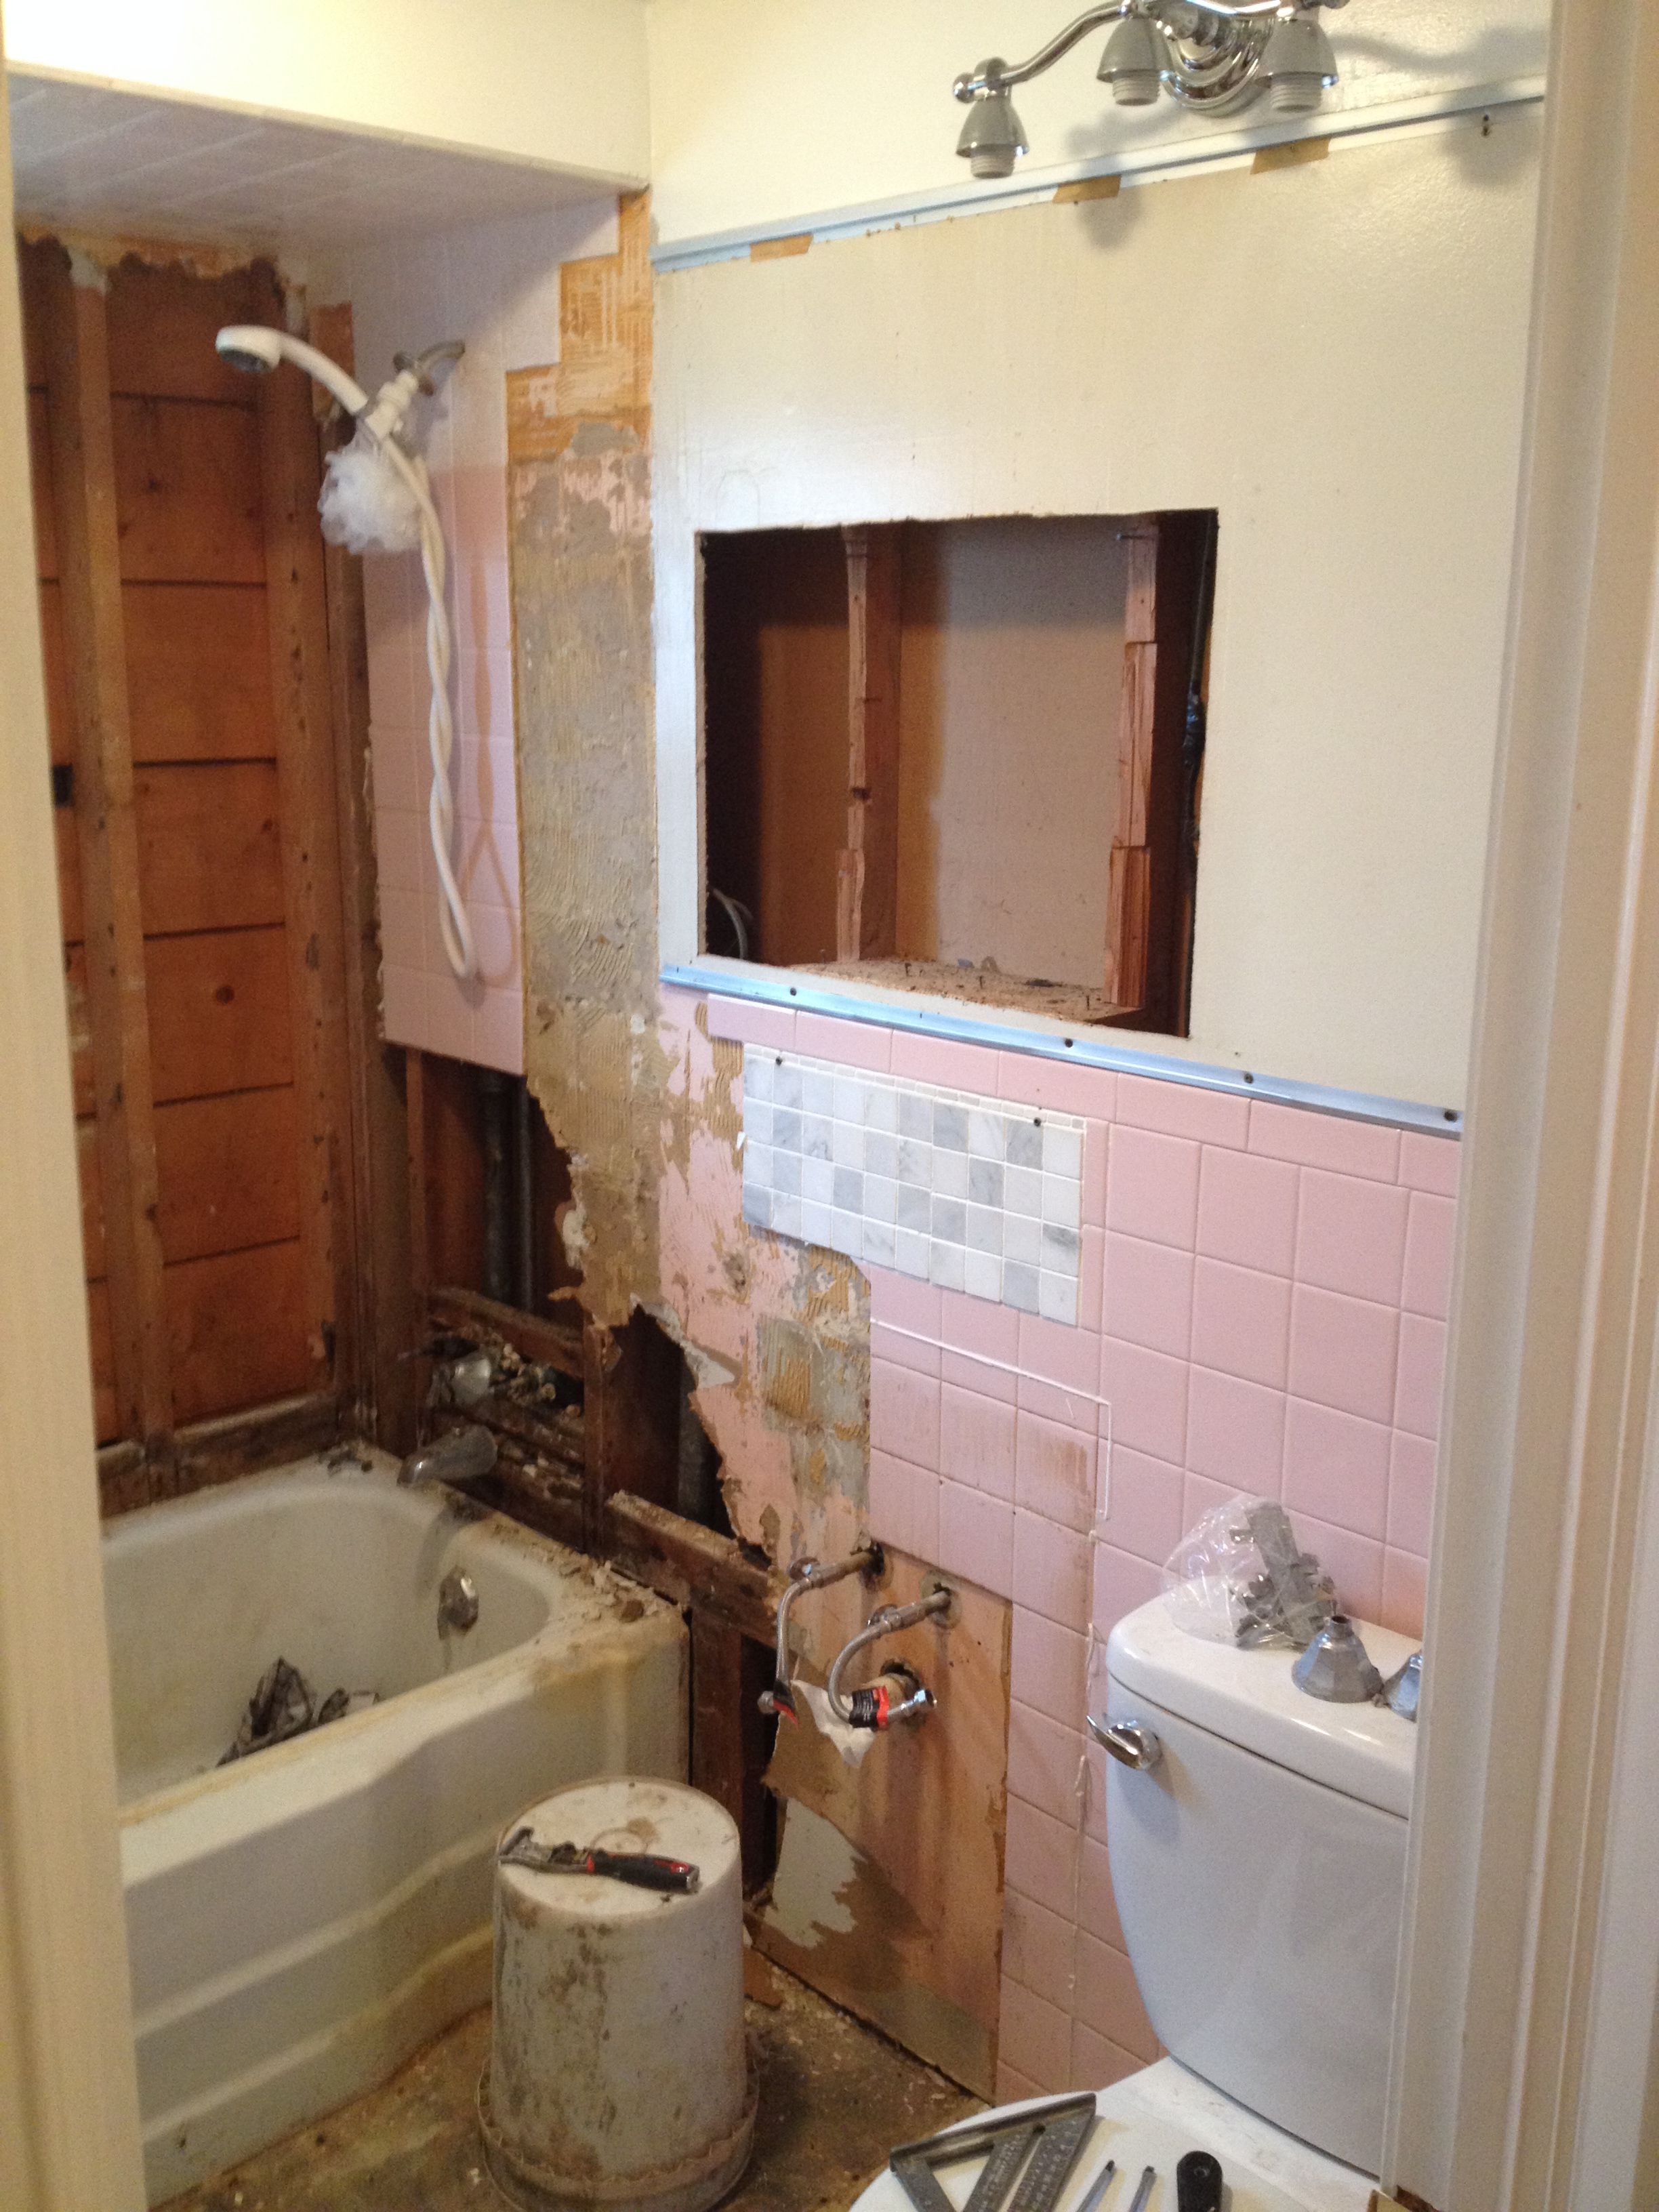 Bathroom renovation update haus2home for How to update a bathroom without renovating